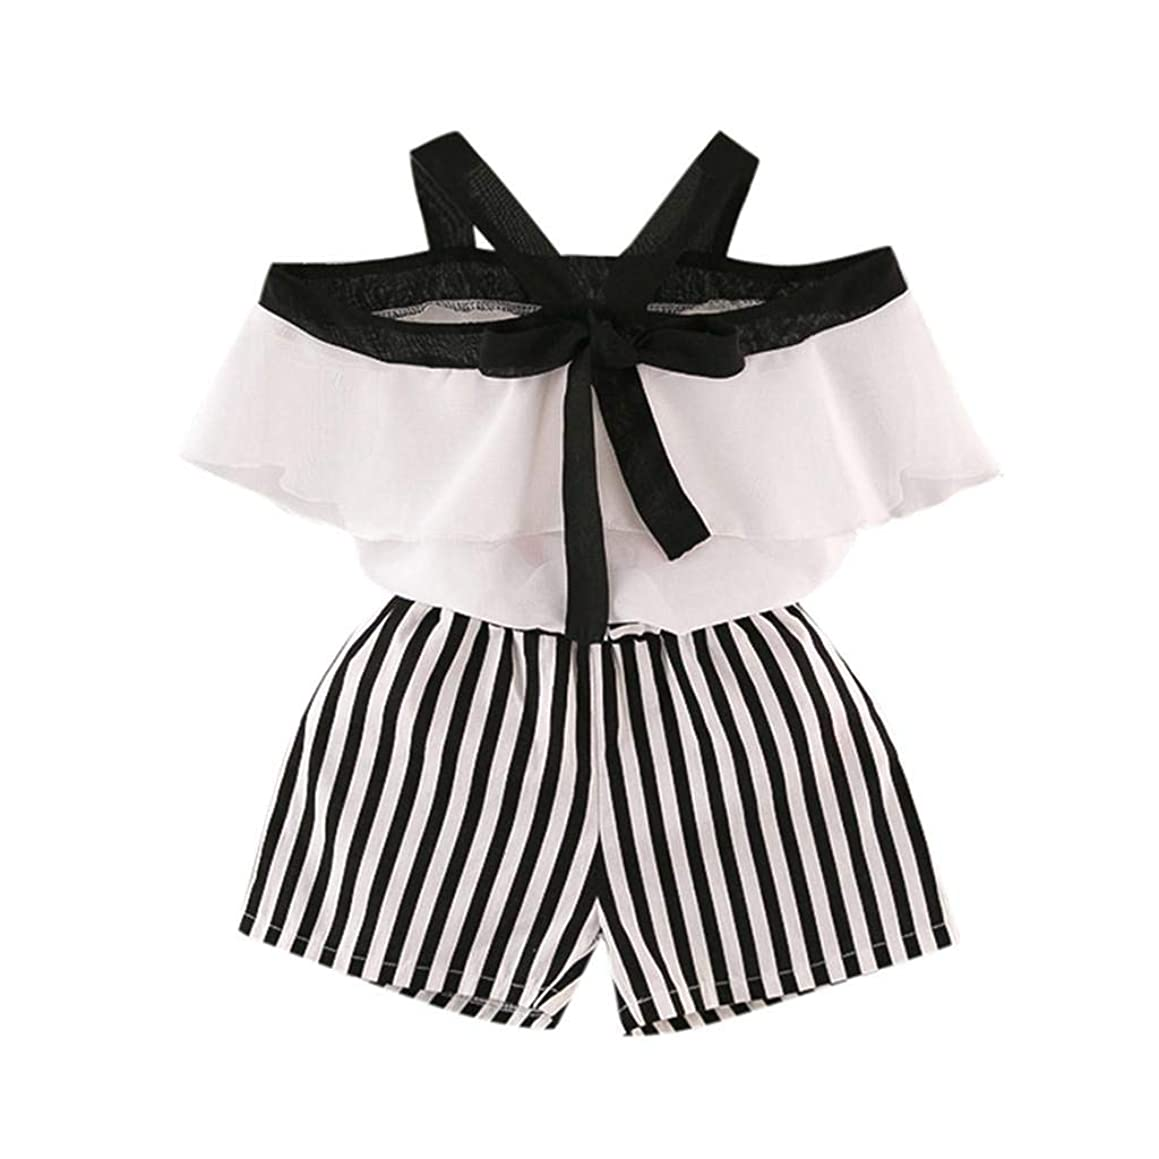 terbklf Toddler Kid Baby Girl Outfits Clothes Lotus Leaf Chiffon Shirt+Stripe Shorts Set Elegant Kindergarten Costume